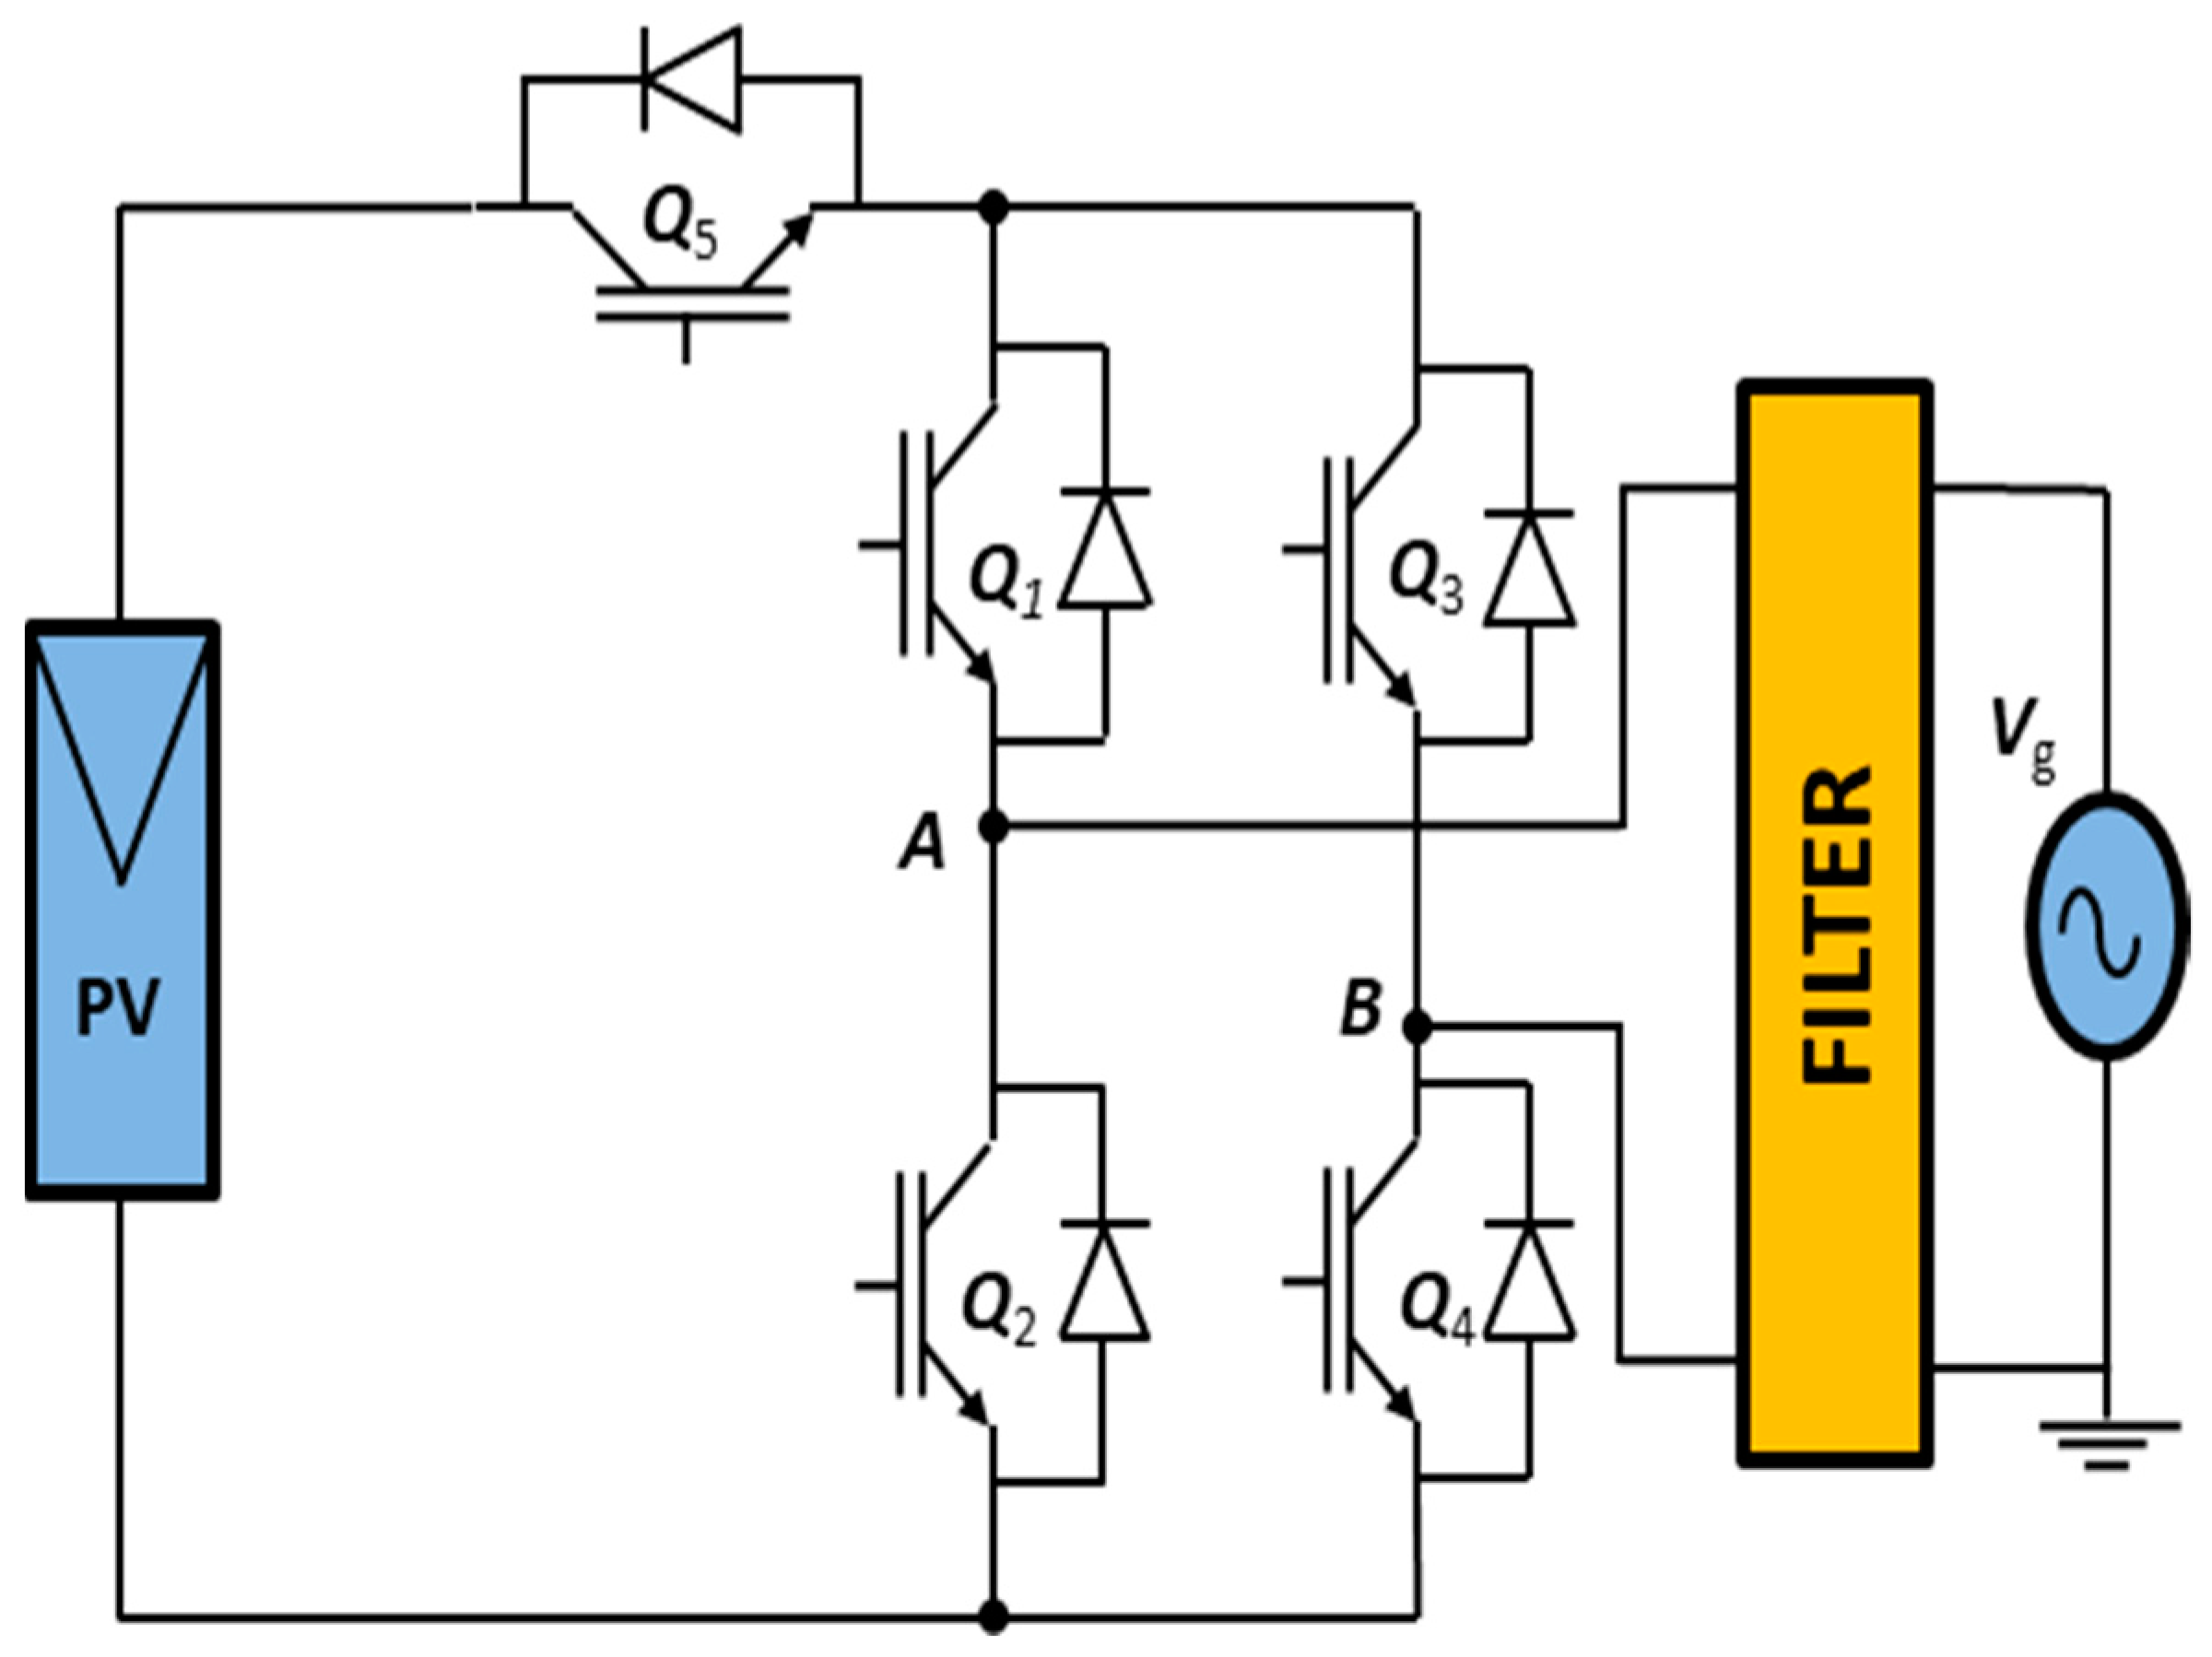 Energies Free Full Text An H5 Transformerless Inverter For Grid Connected Pv Systems With Improved Utilization Factor And A Simple Maximum Power Point Algorithm Html